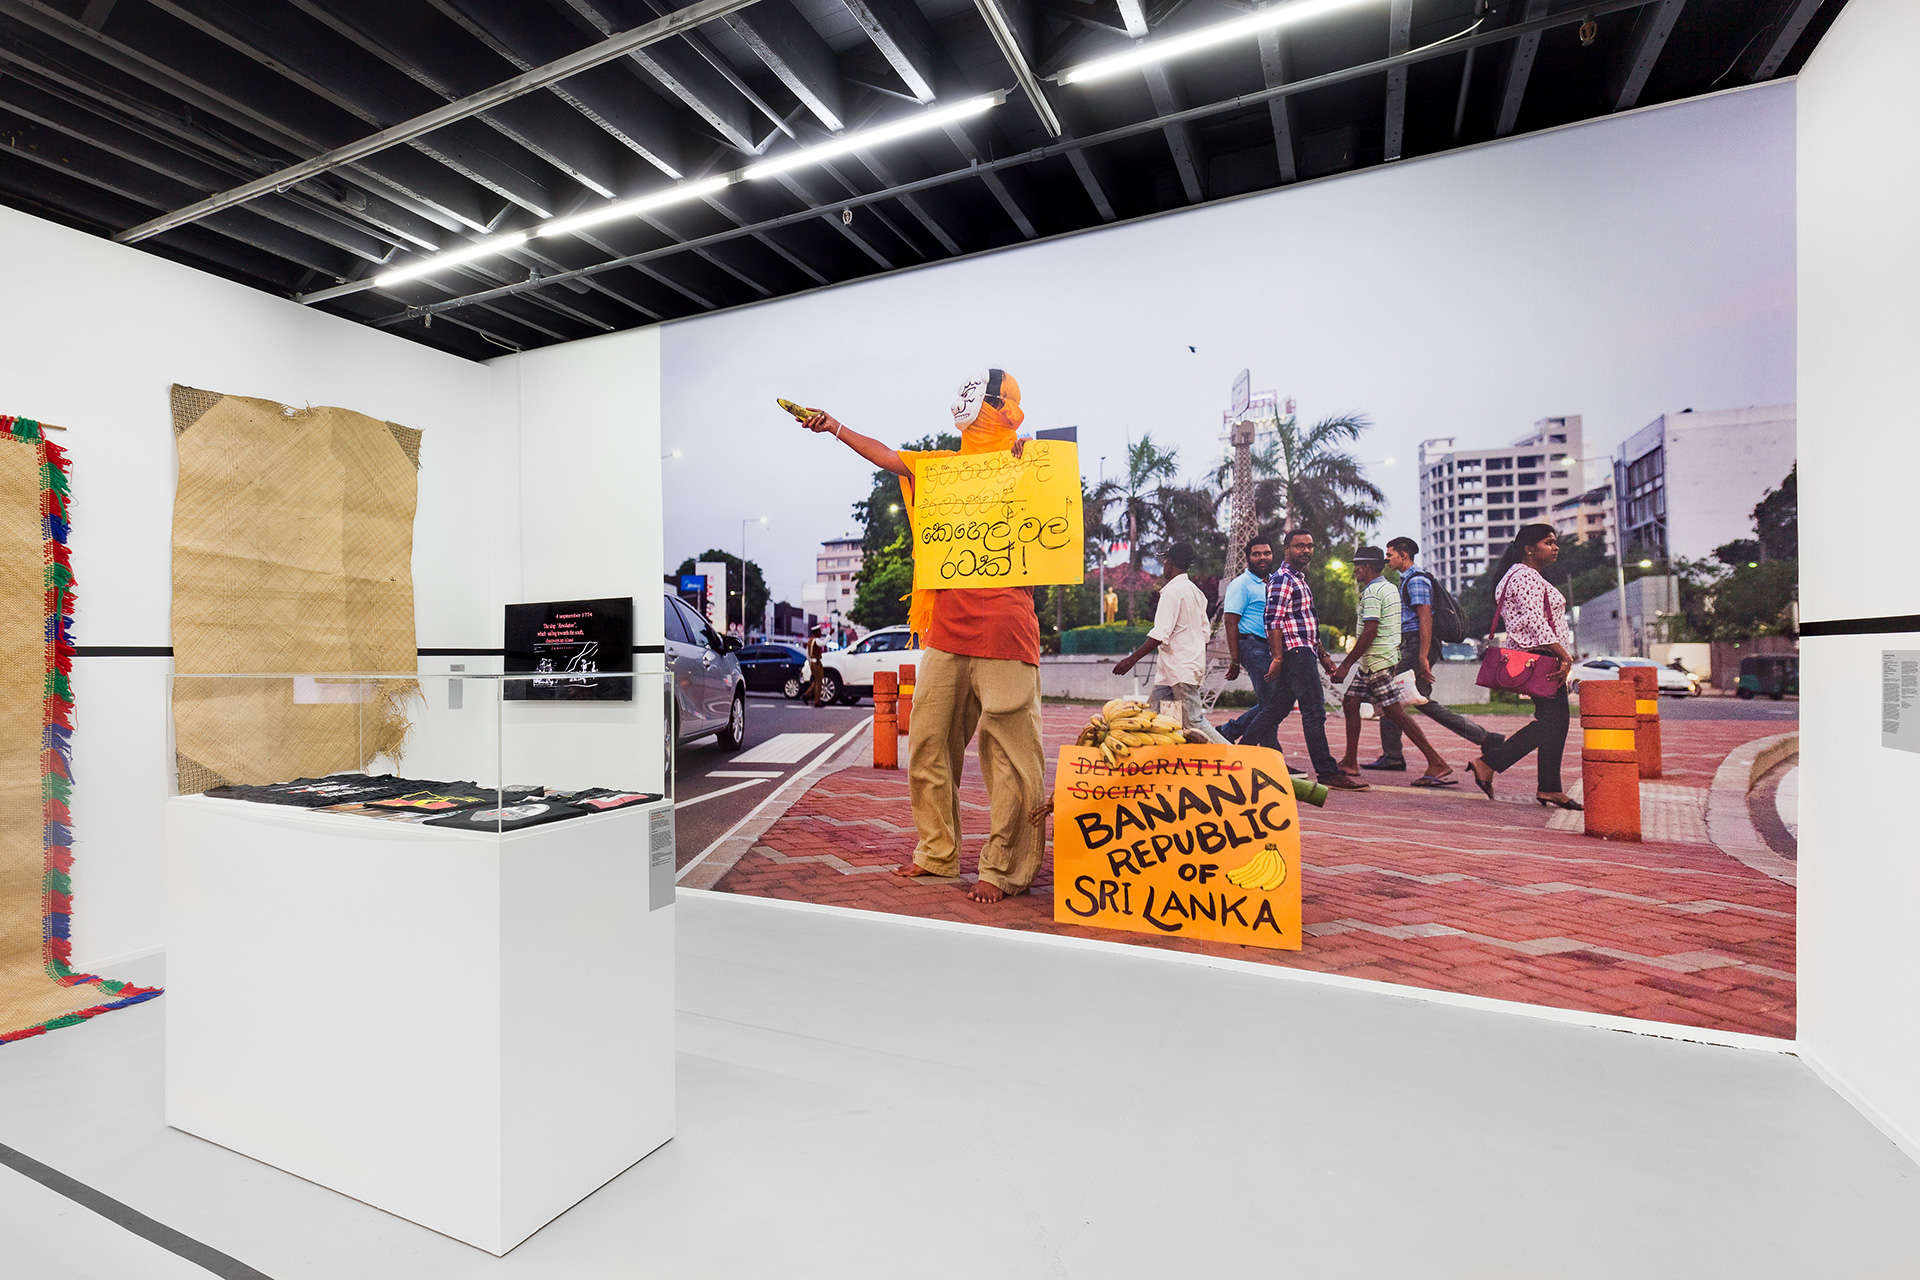 Installation view of Venuri Perera's Banana Republic, 52 ARTISTS 52 ACTIONS, Artspace, Sydney, 2019| 52 ARTISTS 52 ACTIONS | Artspace, Sydney | STIR